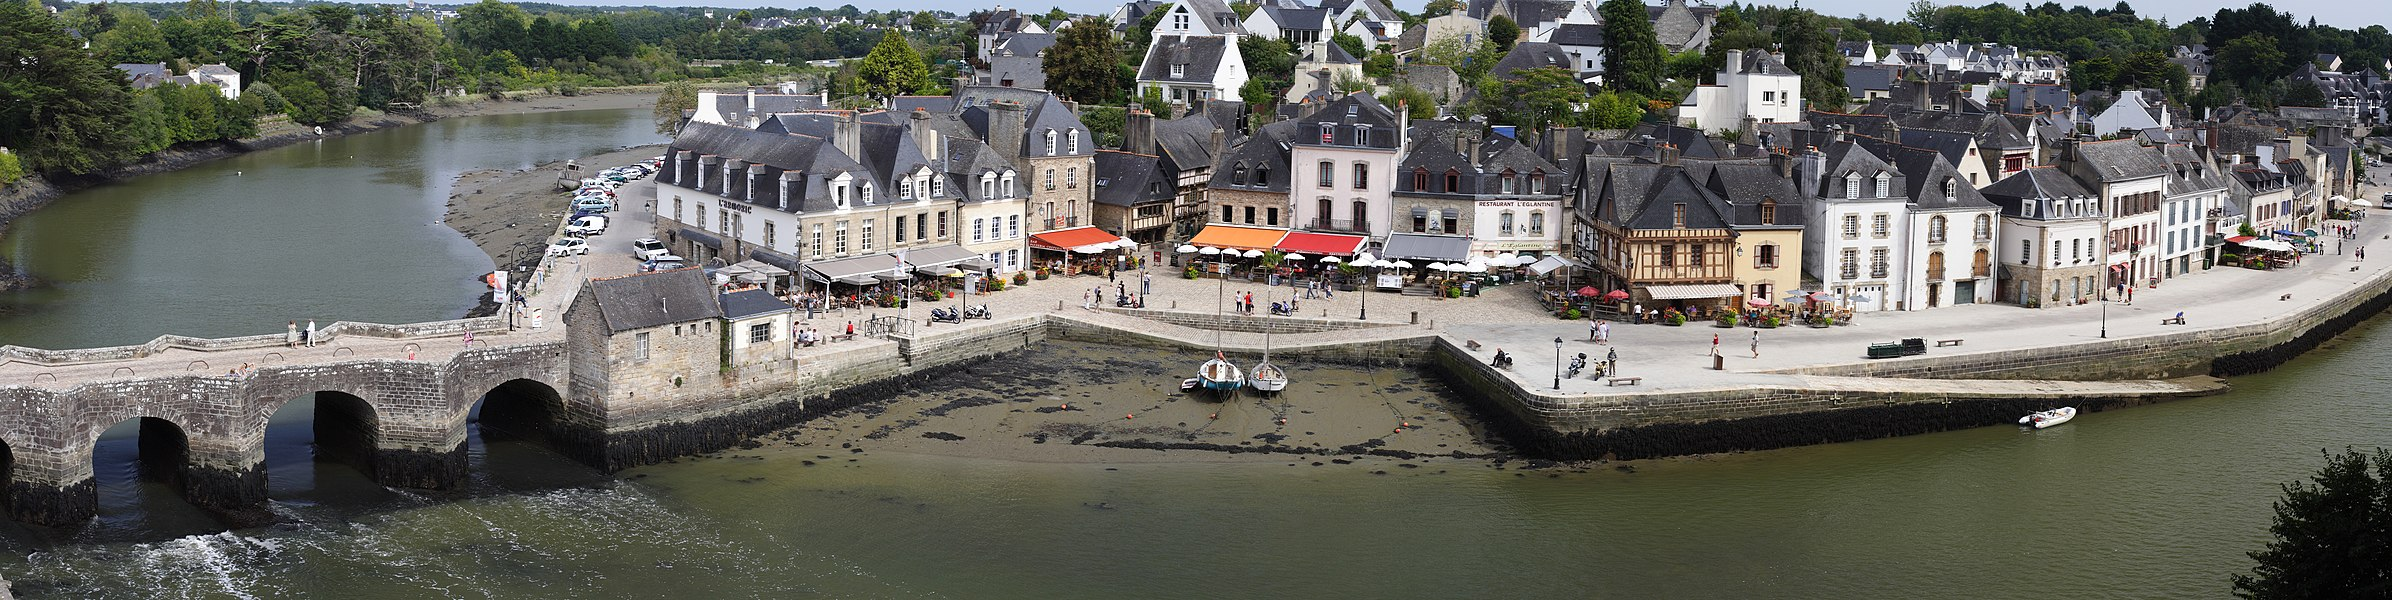 Port Saint Goustan in Auray,France. Panorama created with Hugin from 11 images taken with a Canon EOS 350D and a Canon 50mm f/1.4 @ f/8.